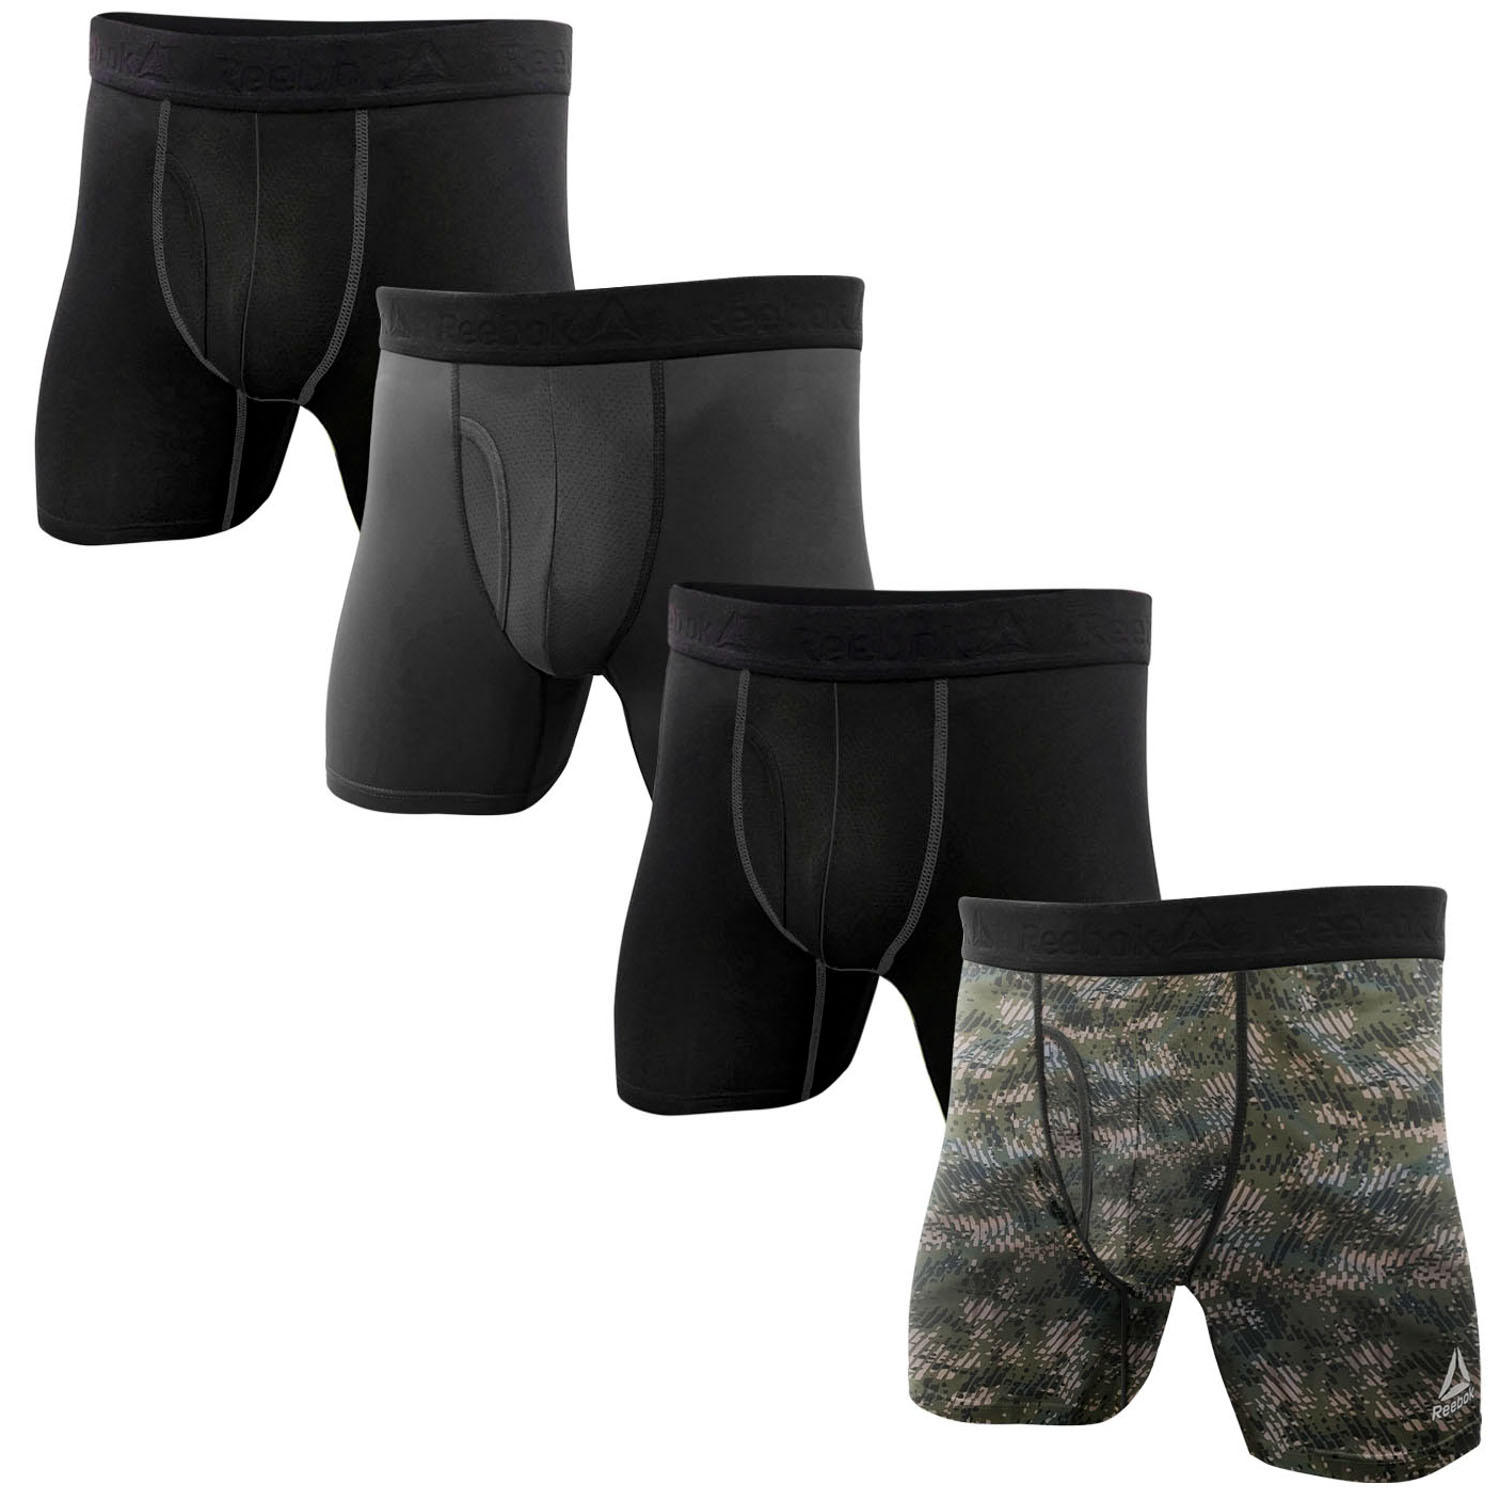 Reebok Mens 4 Pack Performance Boxer Briefs with Comfort Pouch - Black/Camo/Black/Grey Small